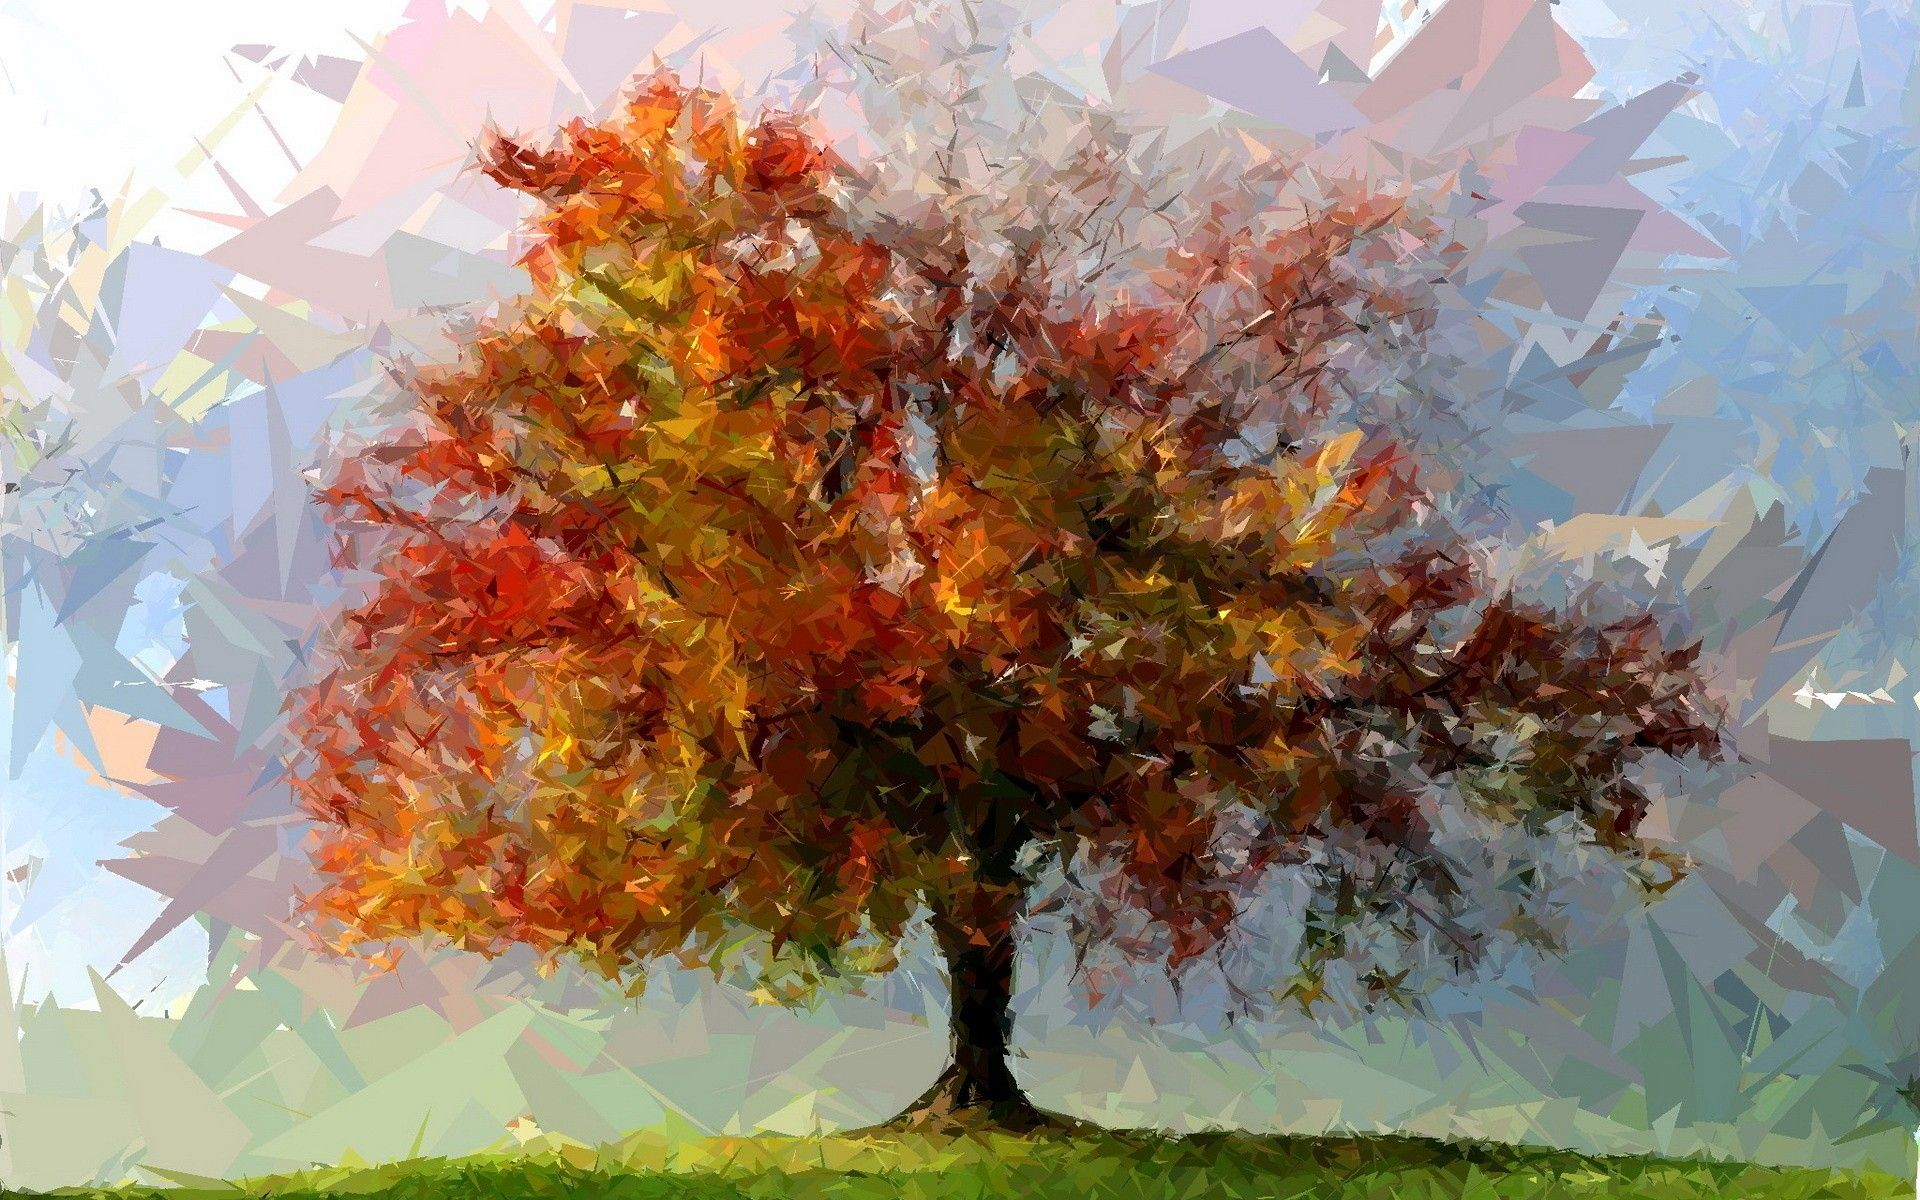 1920x1200 Painting Tree Art Abstract Fotosketcher Shattered Autumn ...